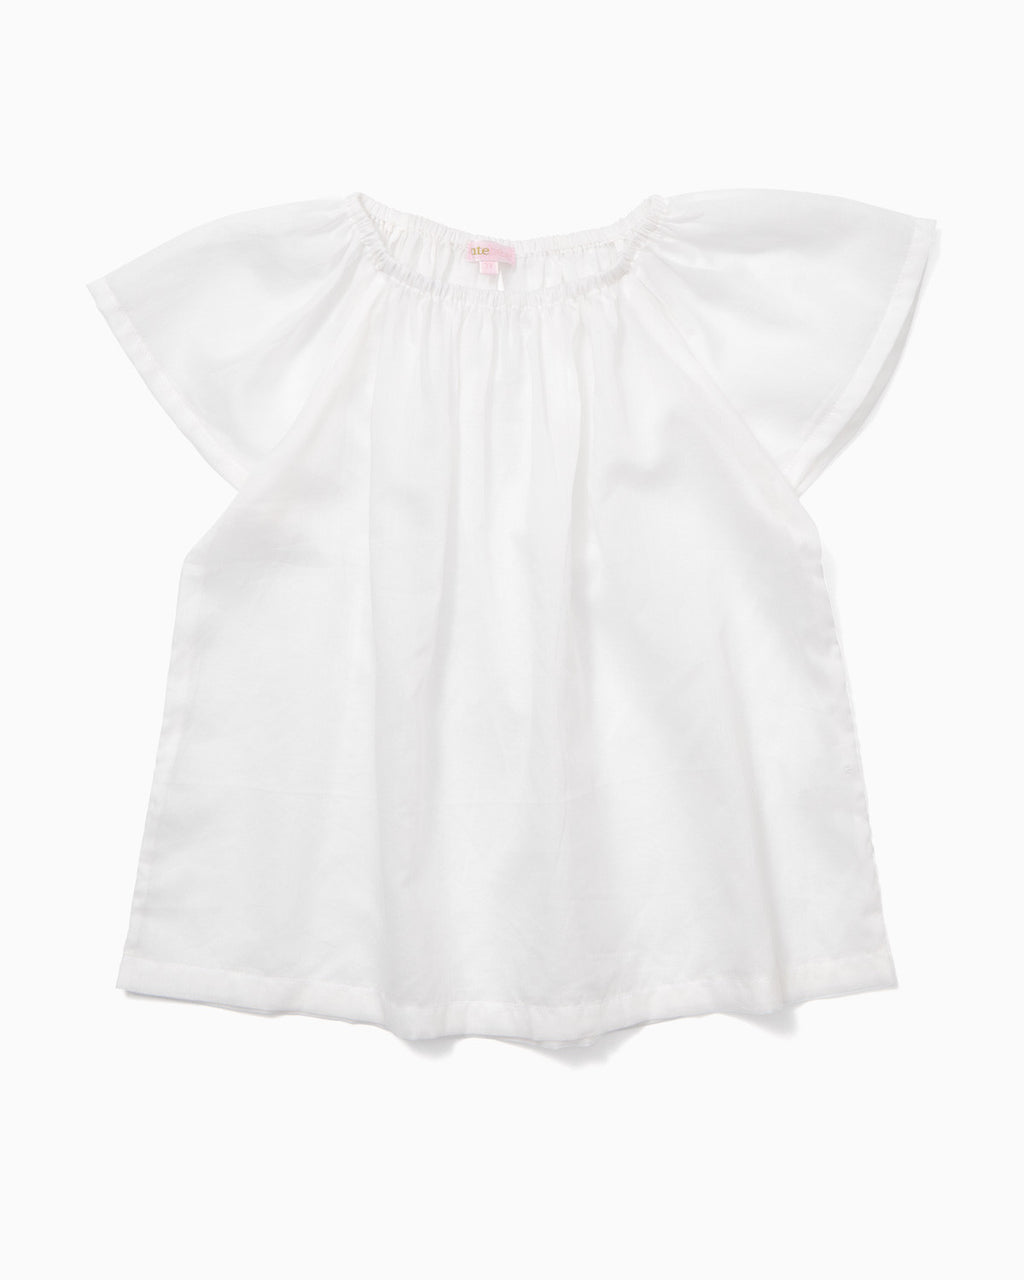 Butterfly sleeve top in the finest white cotton - printebebe.com